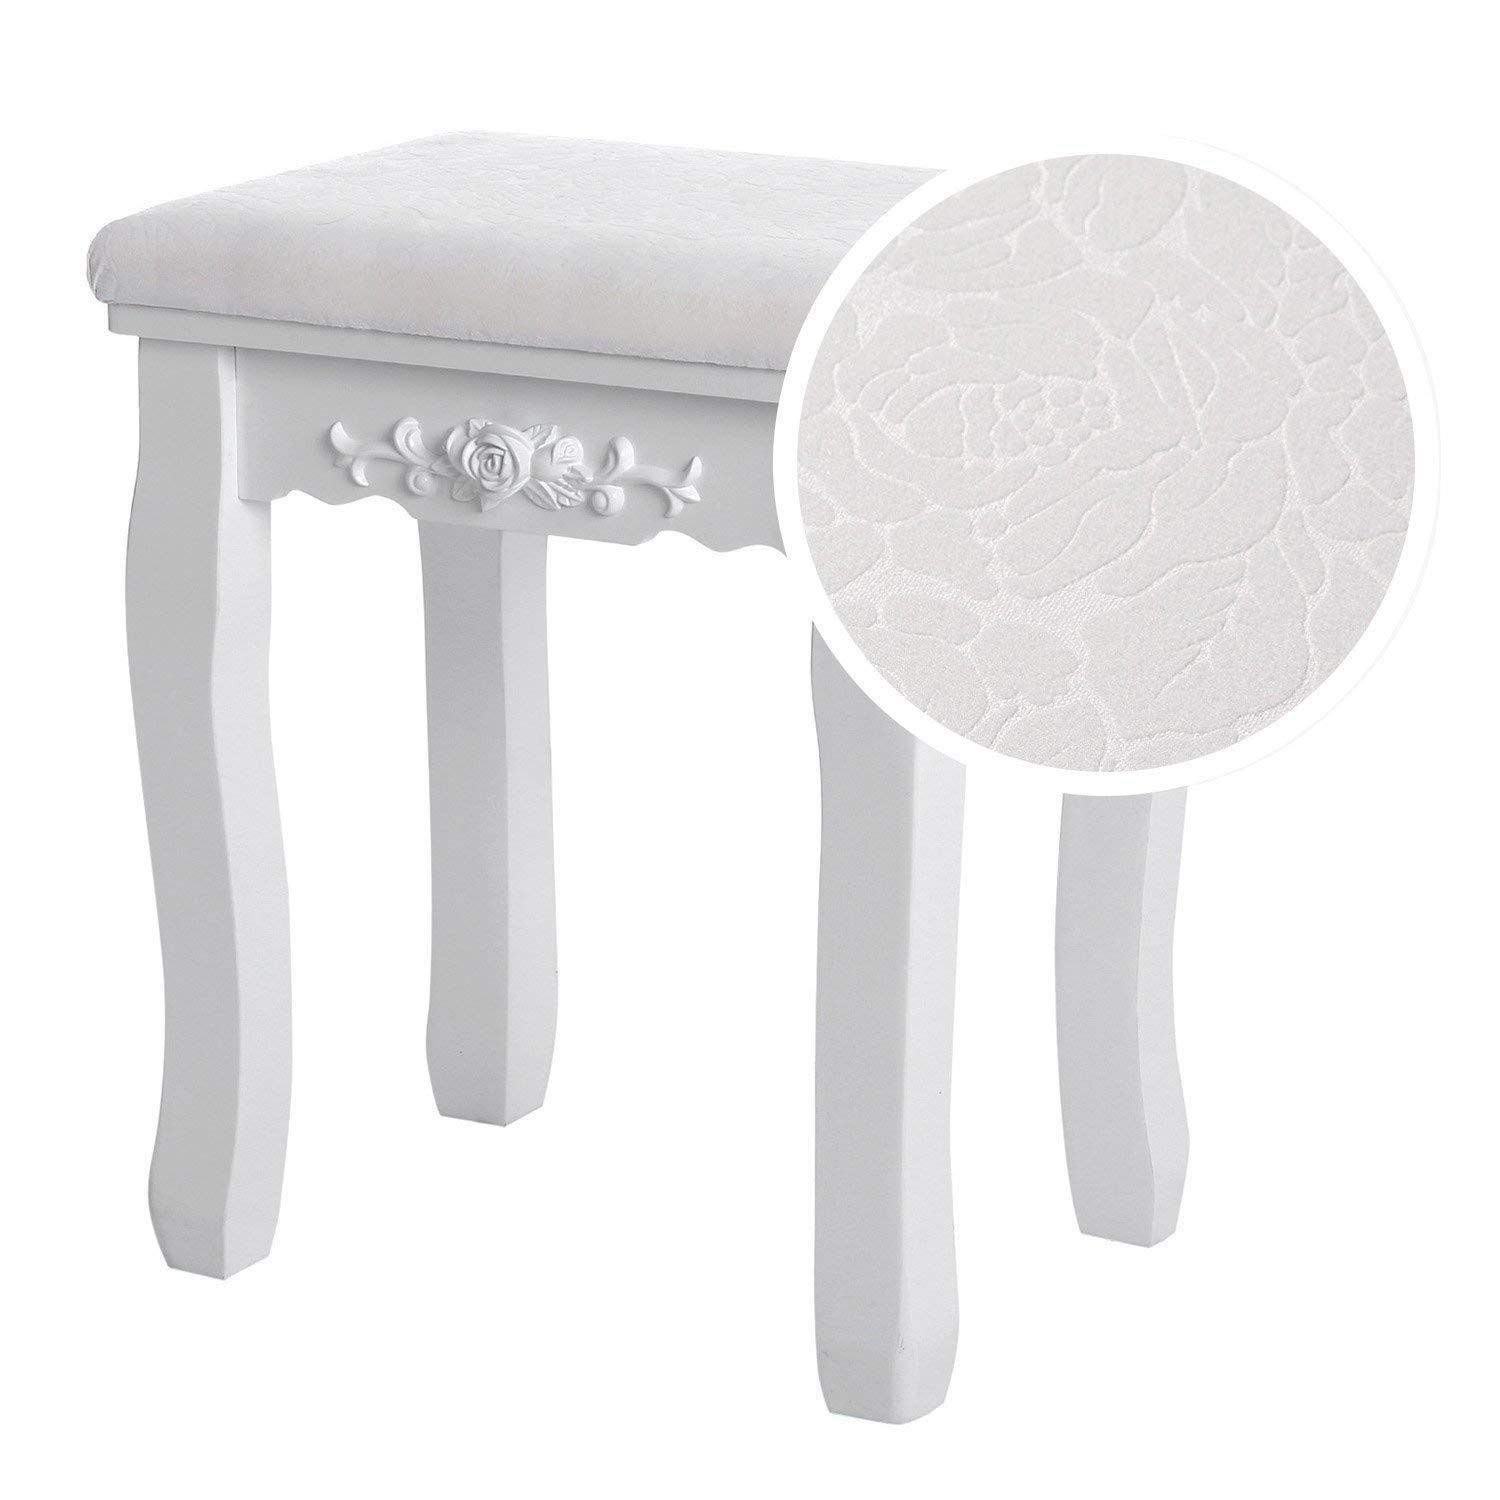 Amazon.com : LRQHHZYQ Dressing Stool, White Dressing Table ...